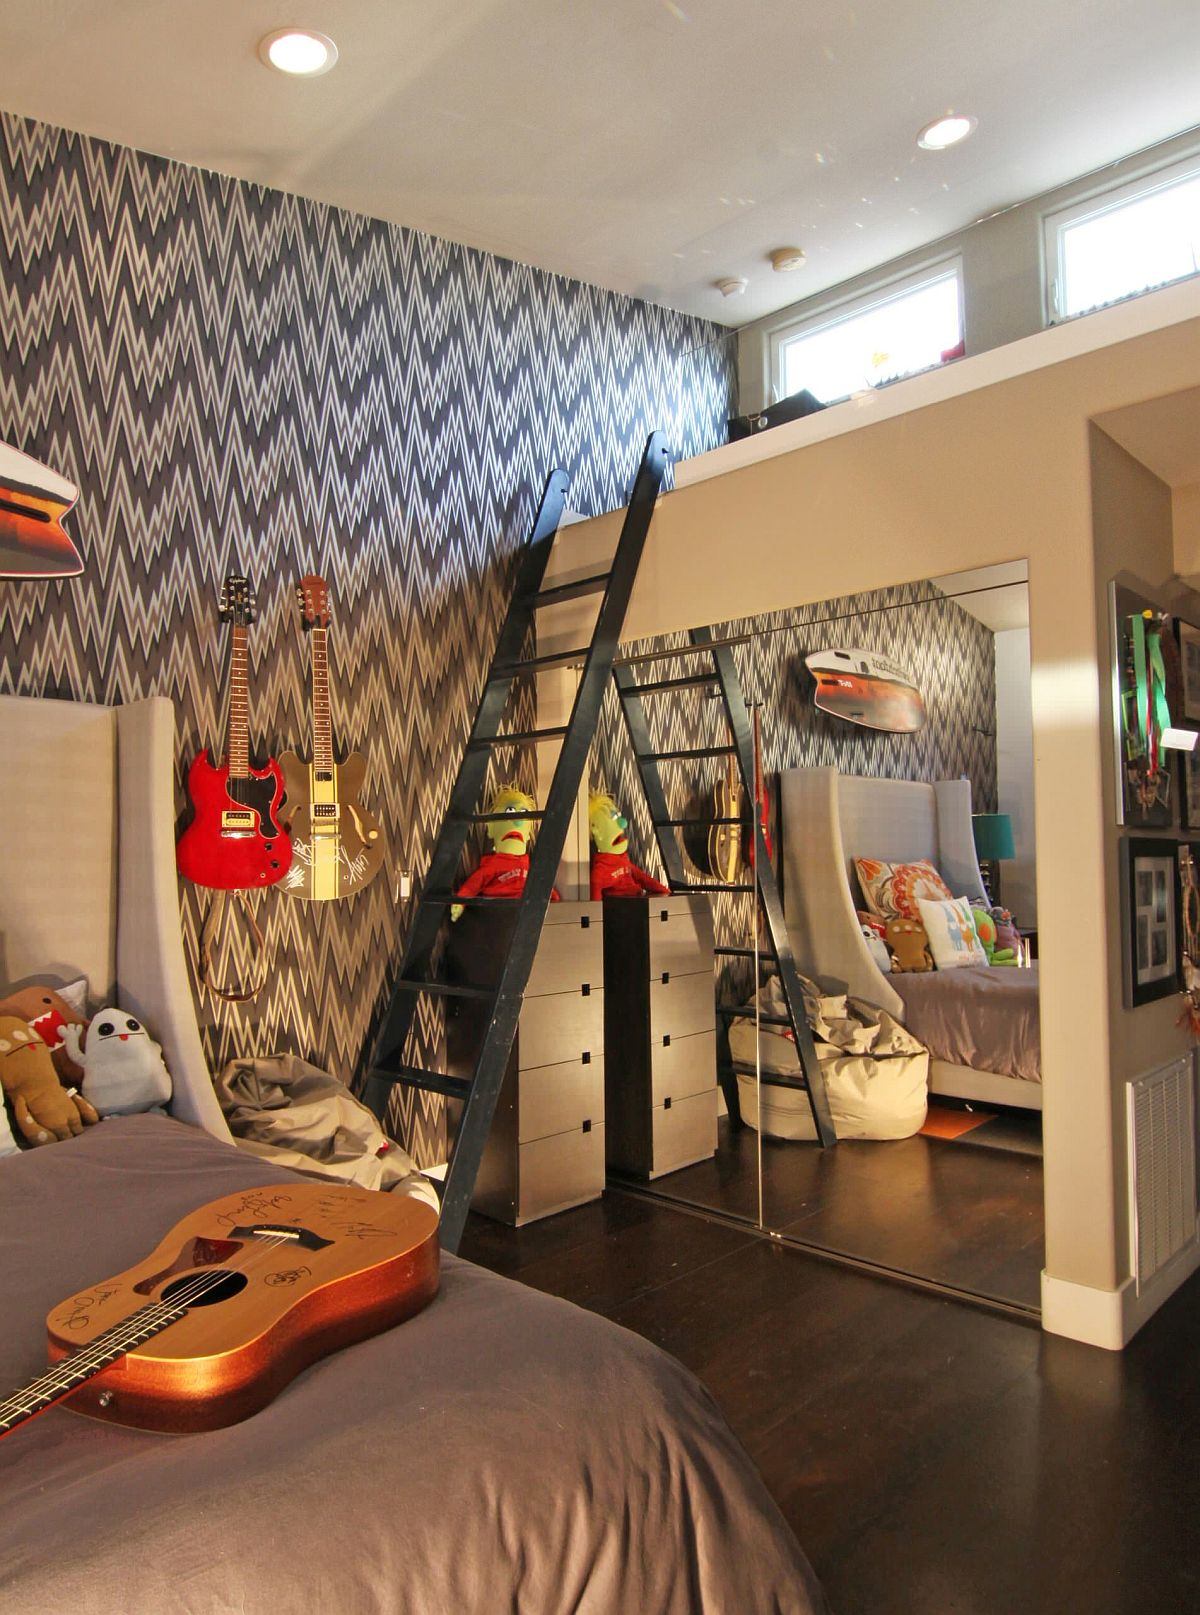 Loft-bed-can-come-in-different-shapes-and-forms-in-the-kids-bedroom-25056